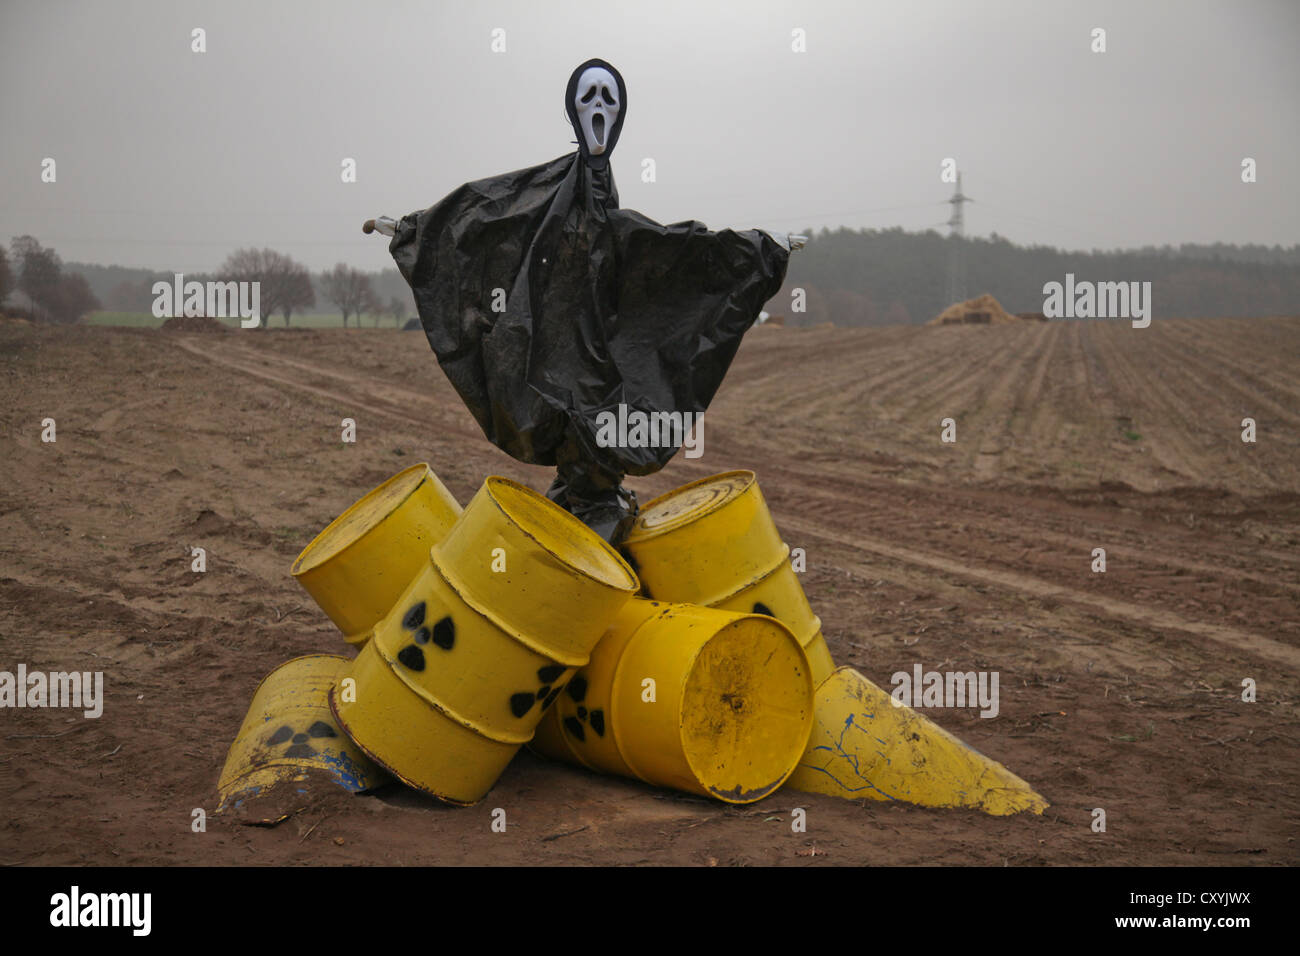 Anti-nuclear protest scarecrow in a field, Castor transport to Gorleben, Metzingen, Lower Saxony - Stock Image